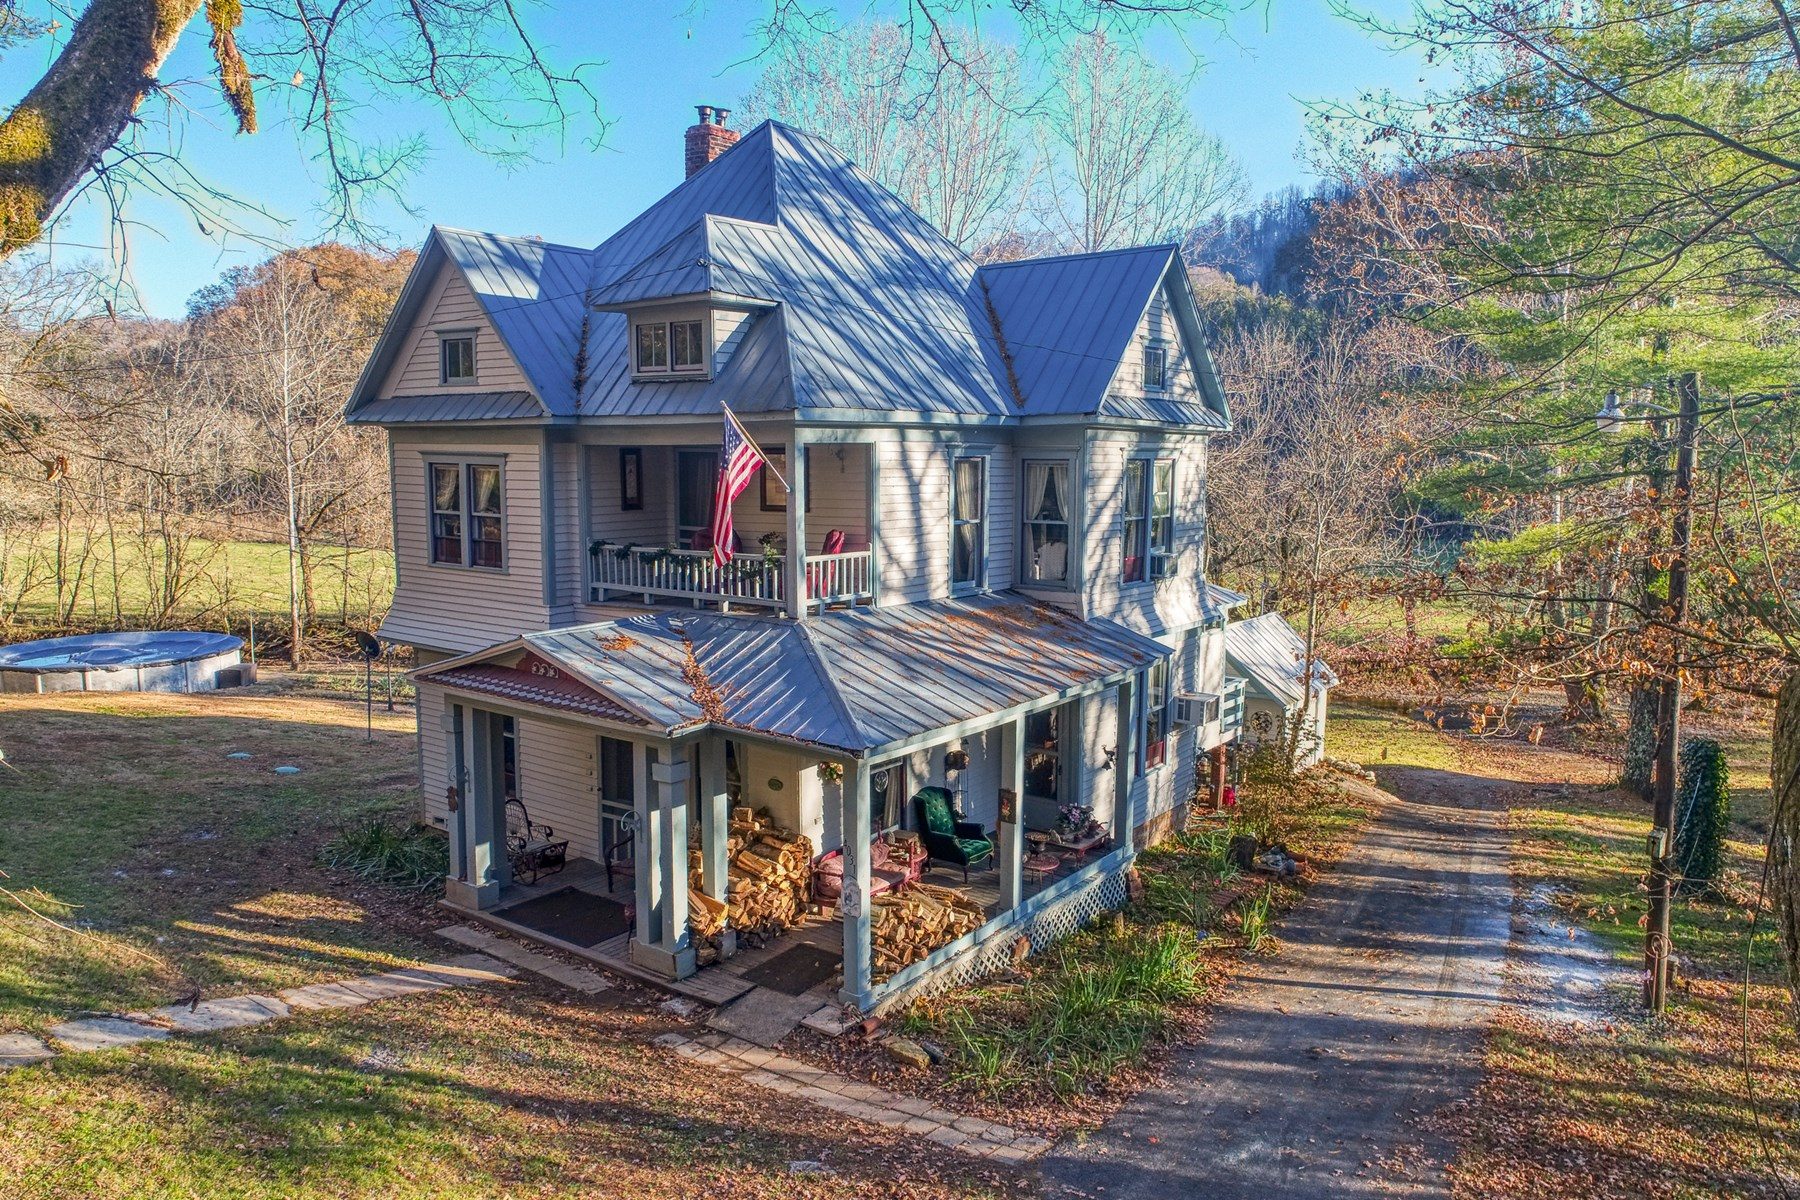 1917 Sears & Roebuck Victorian Home For Sale in East TN